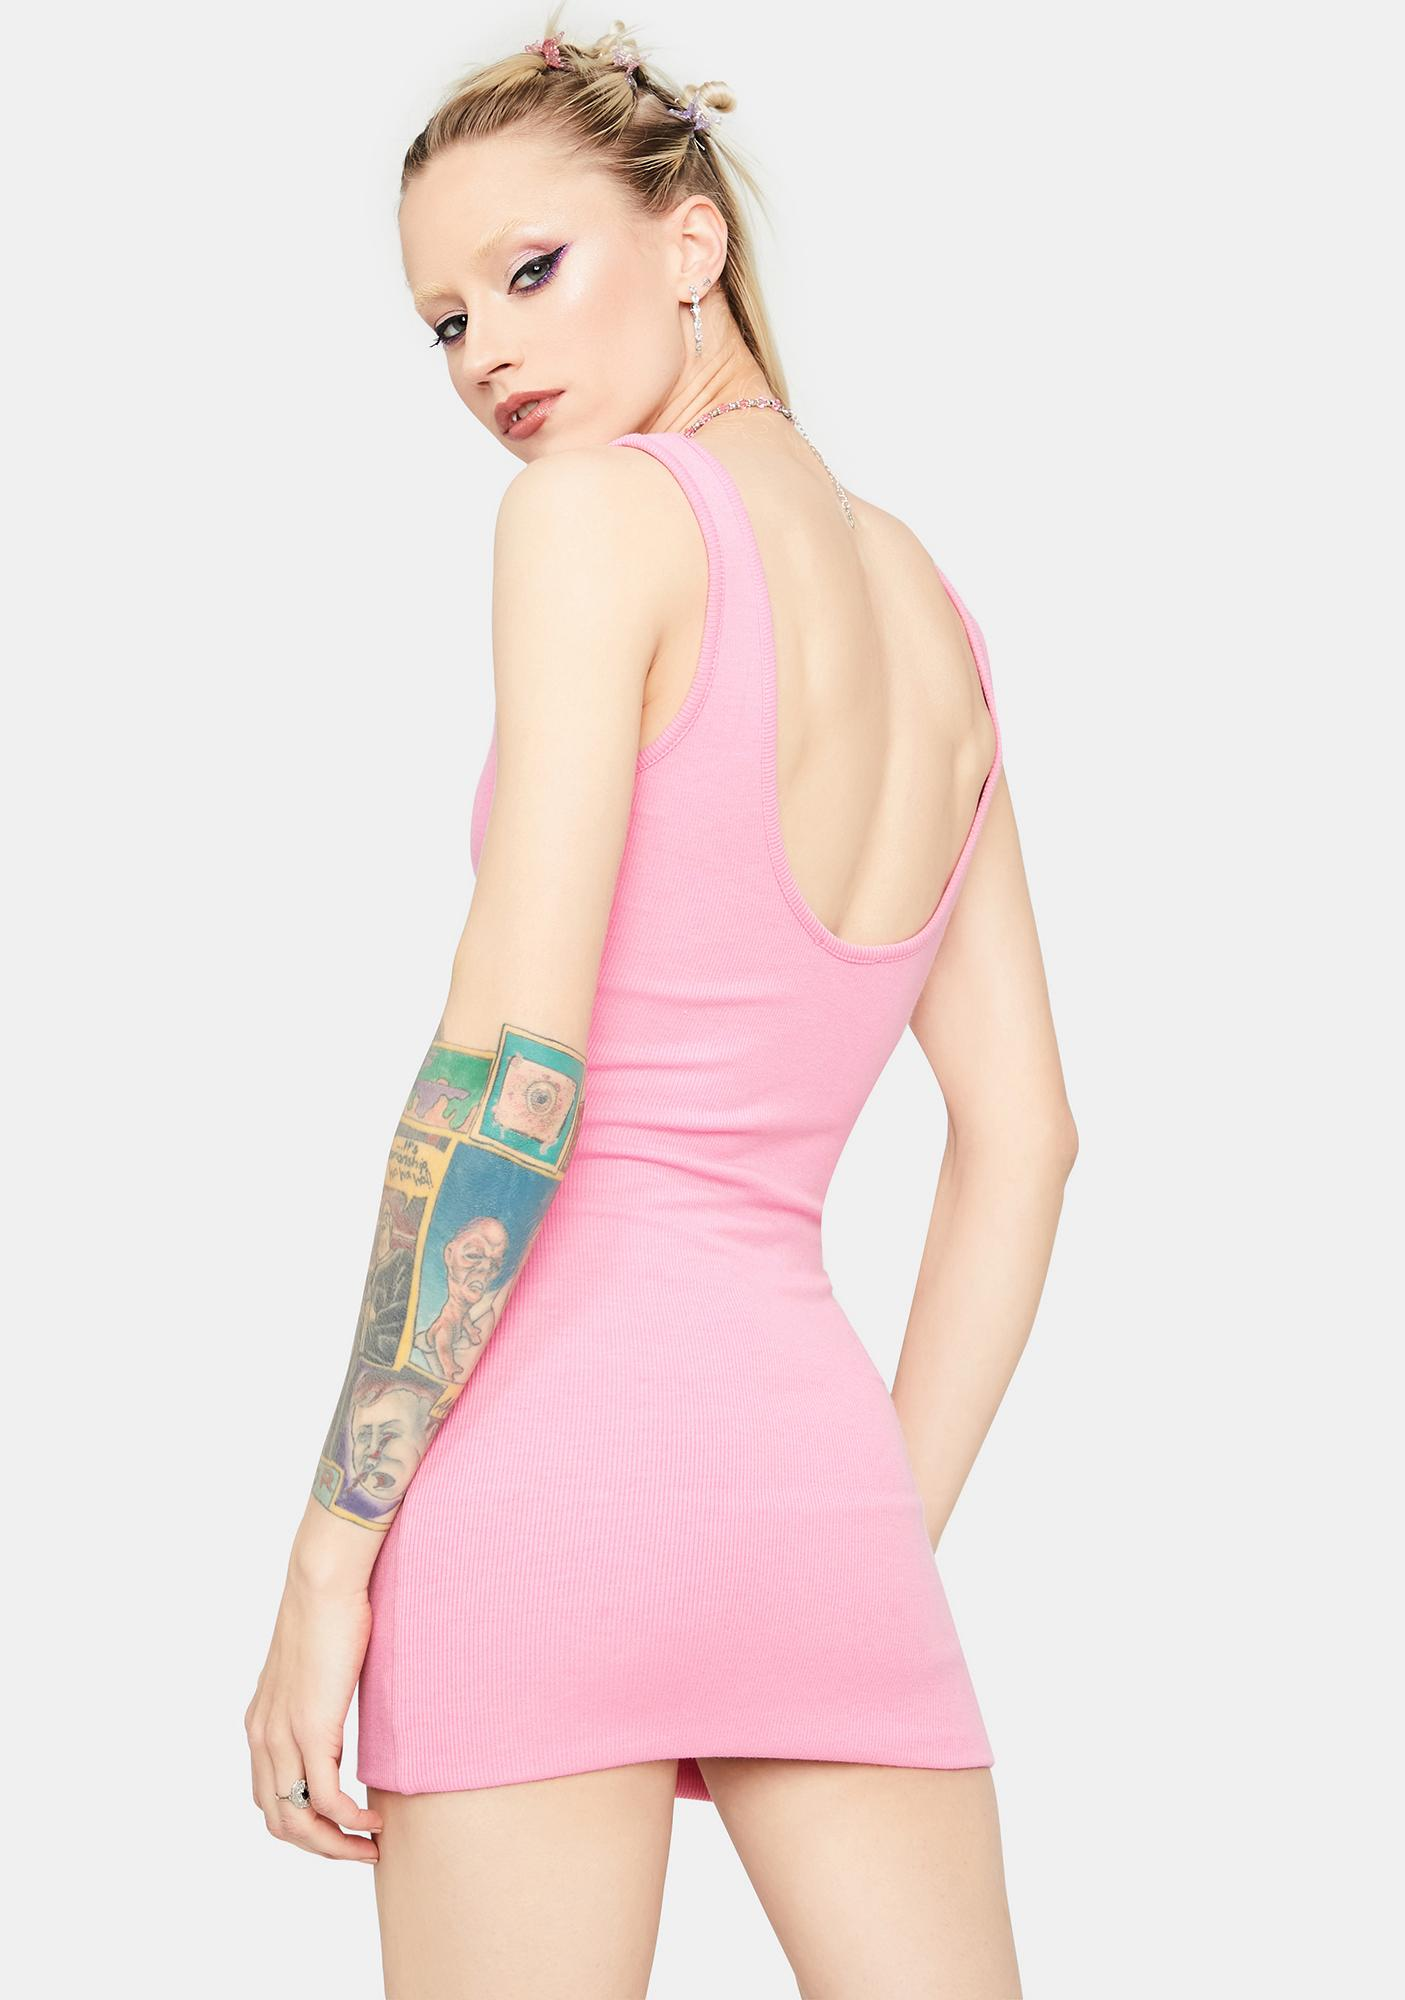 Pixie Dishonest Intentions Mini Dress